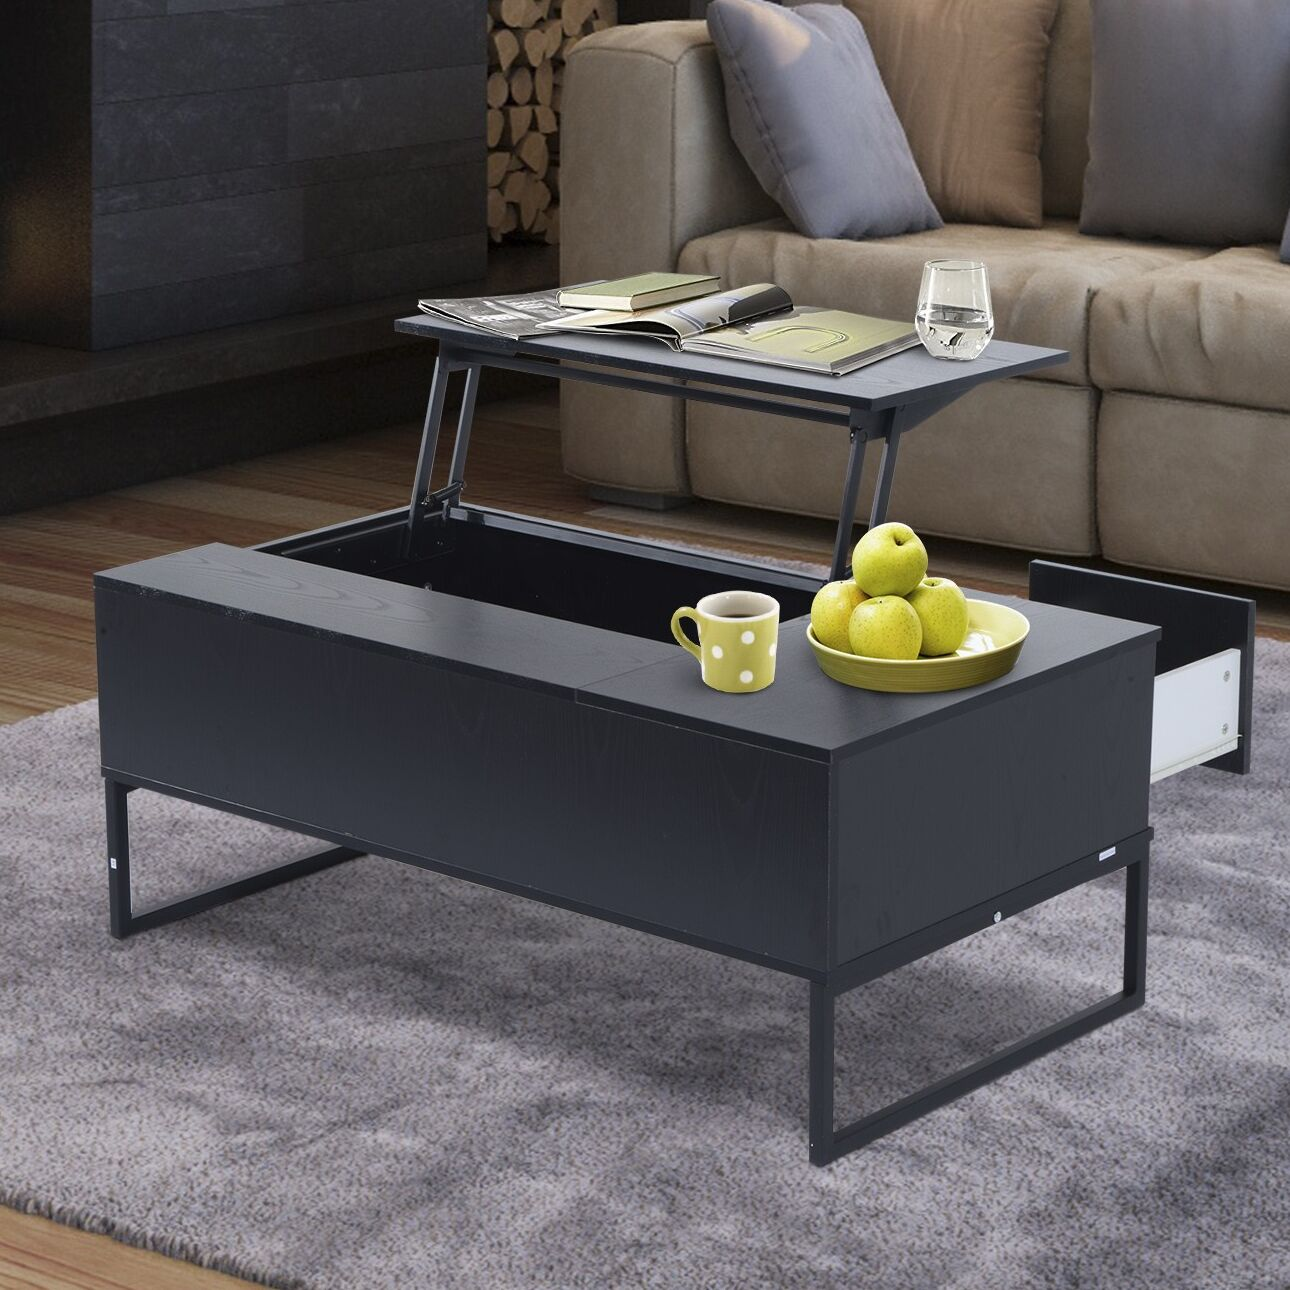 Modern Lift Top Coffee Table with Storage Color: Black